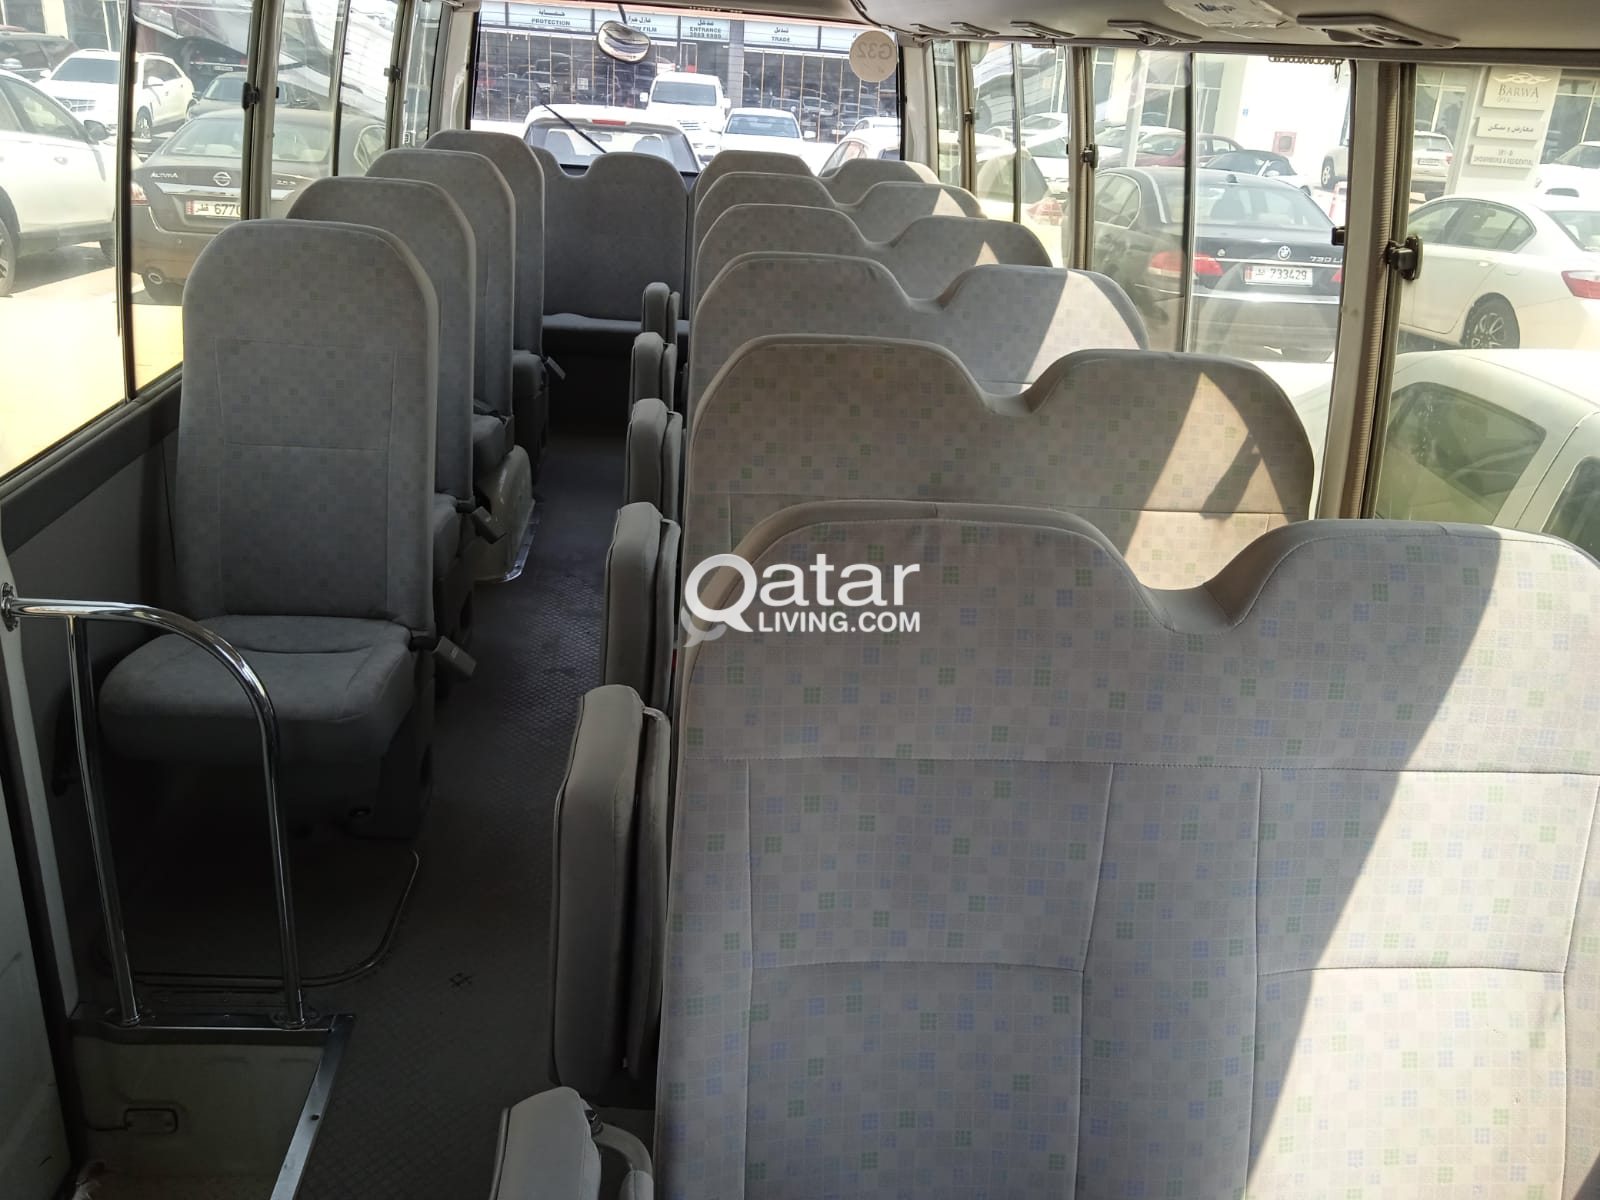 Toyota coaster Bus 30 seats petrol